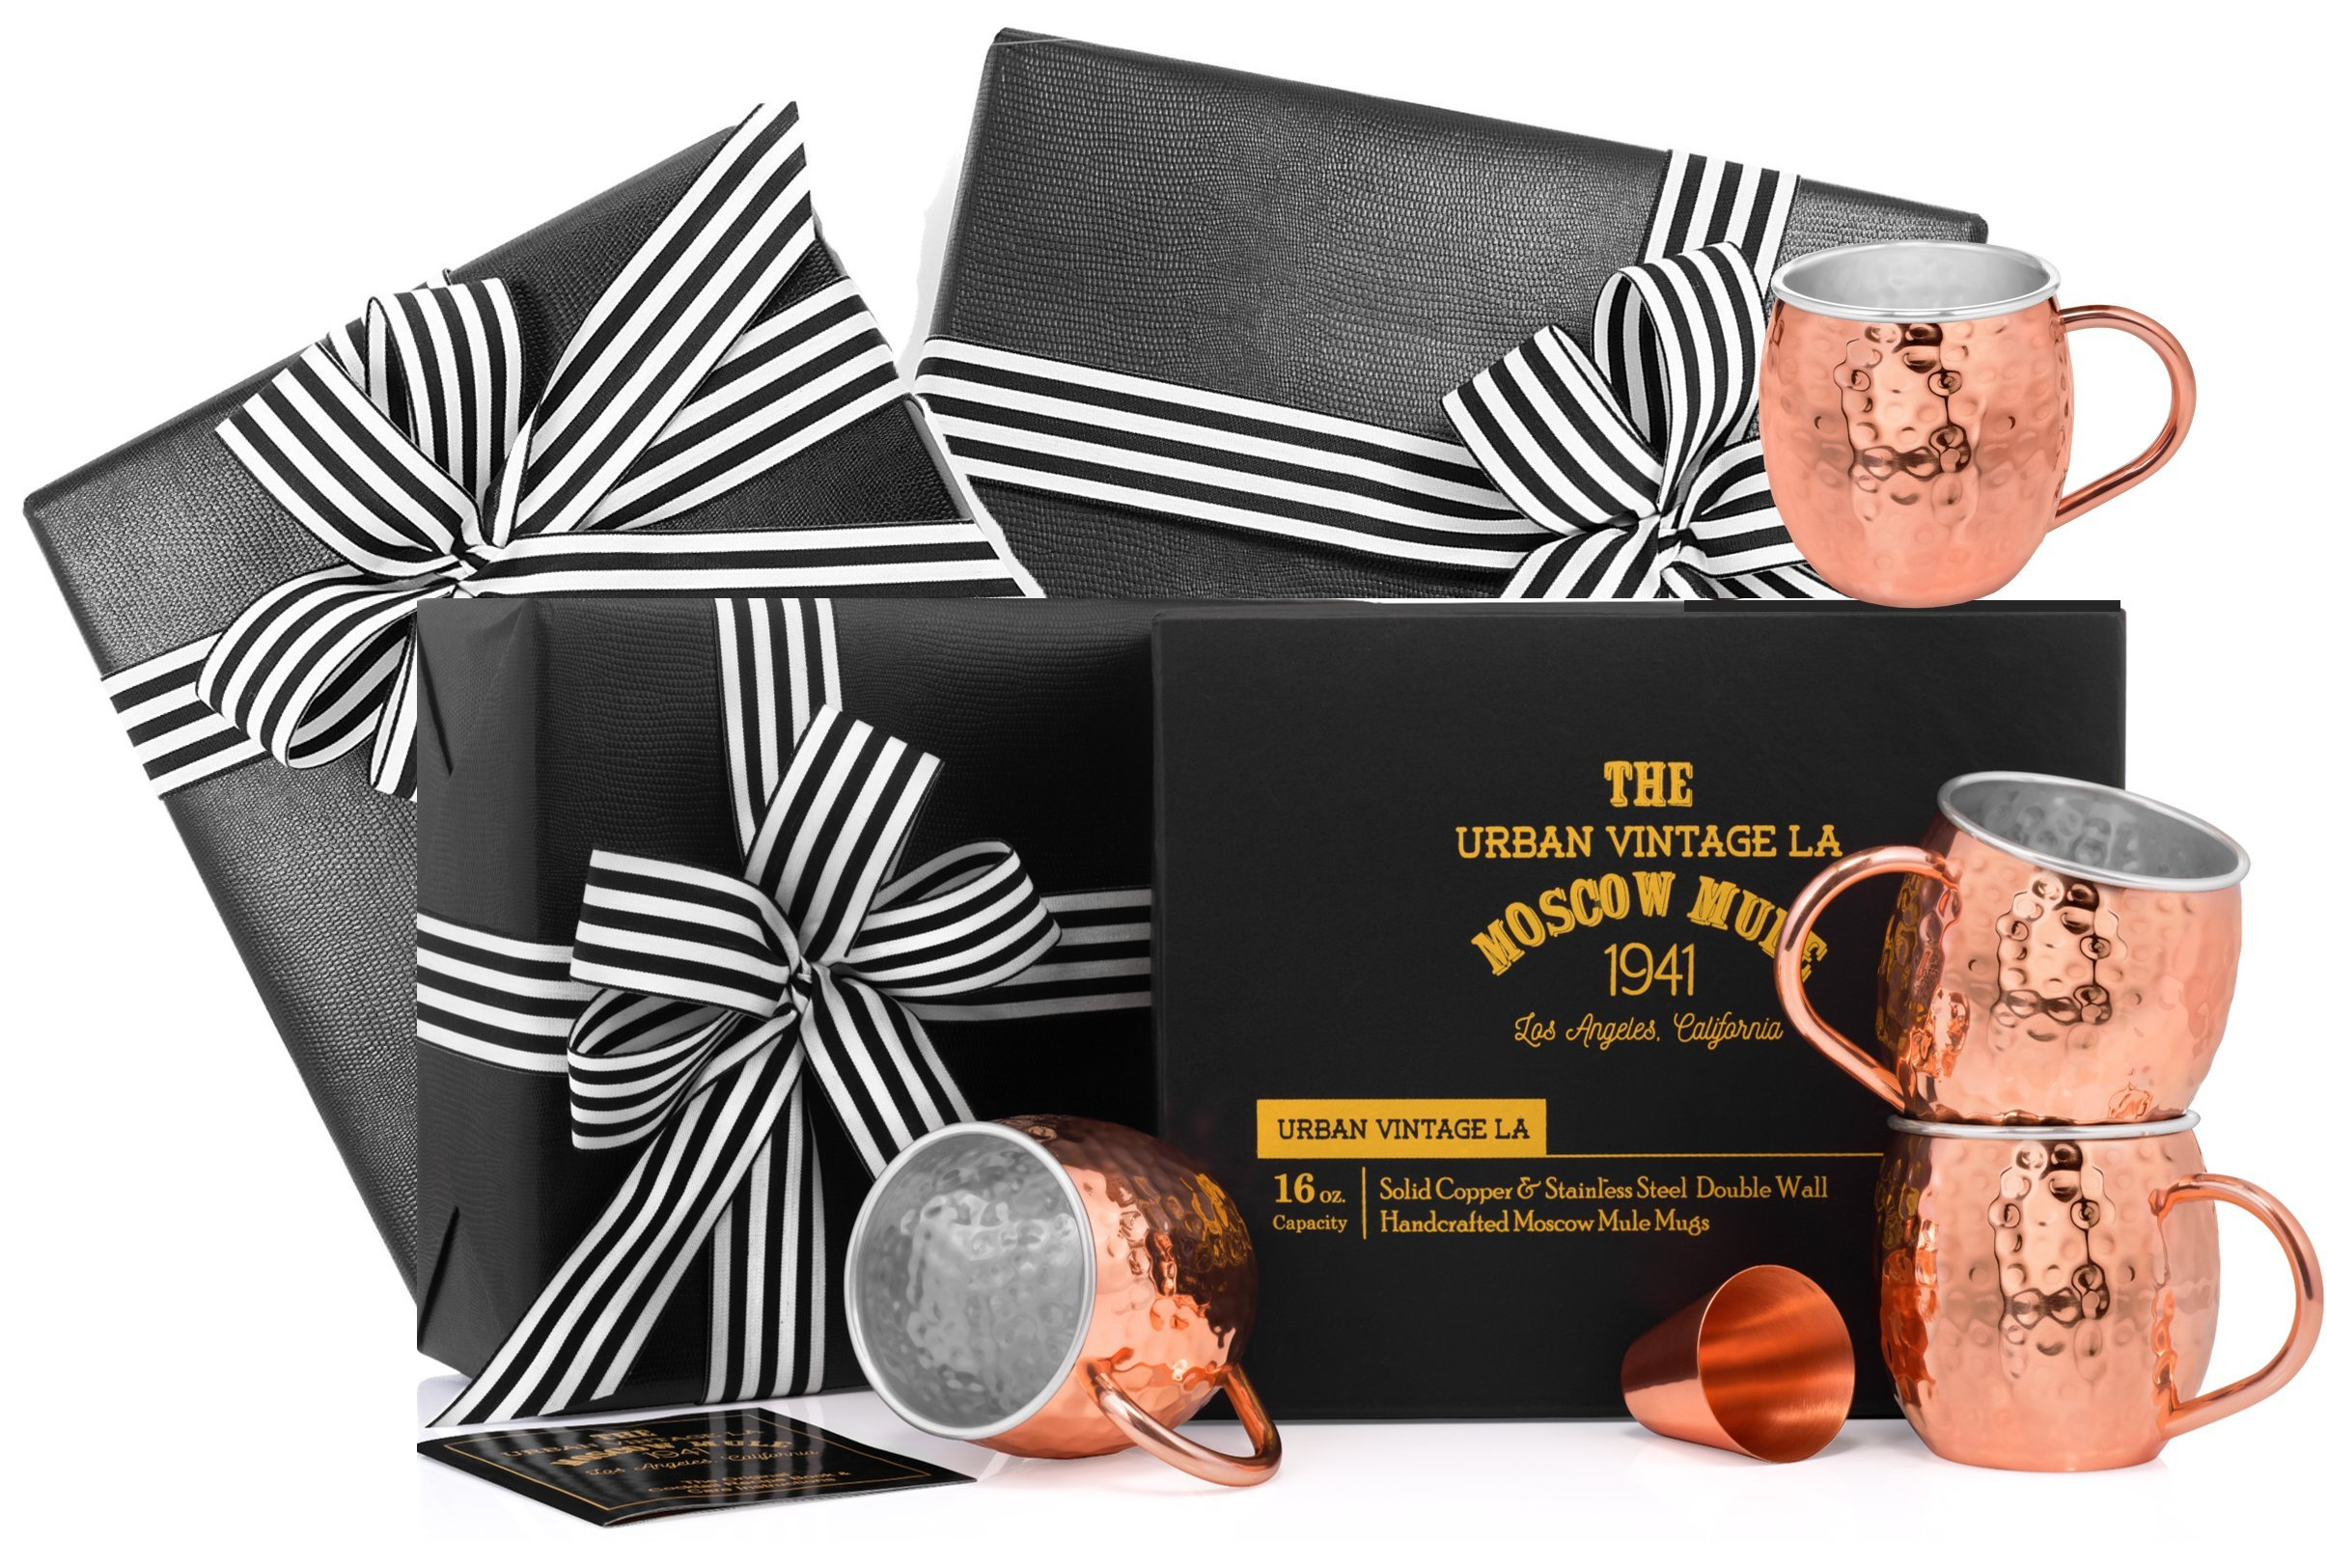 Gift Wrapped Set of 4 Moscow Mule Copper Mugs with Stainless-Steel Lining | Large Gift Box Includes 4 Double Wall Copper Mugs, Shot Glass & Cocktail Recipe Book | Premium, Hammered, Heavy-Duty Cups